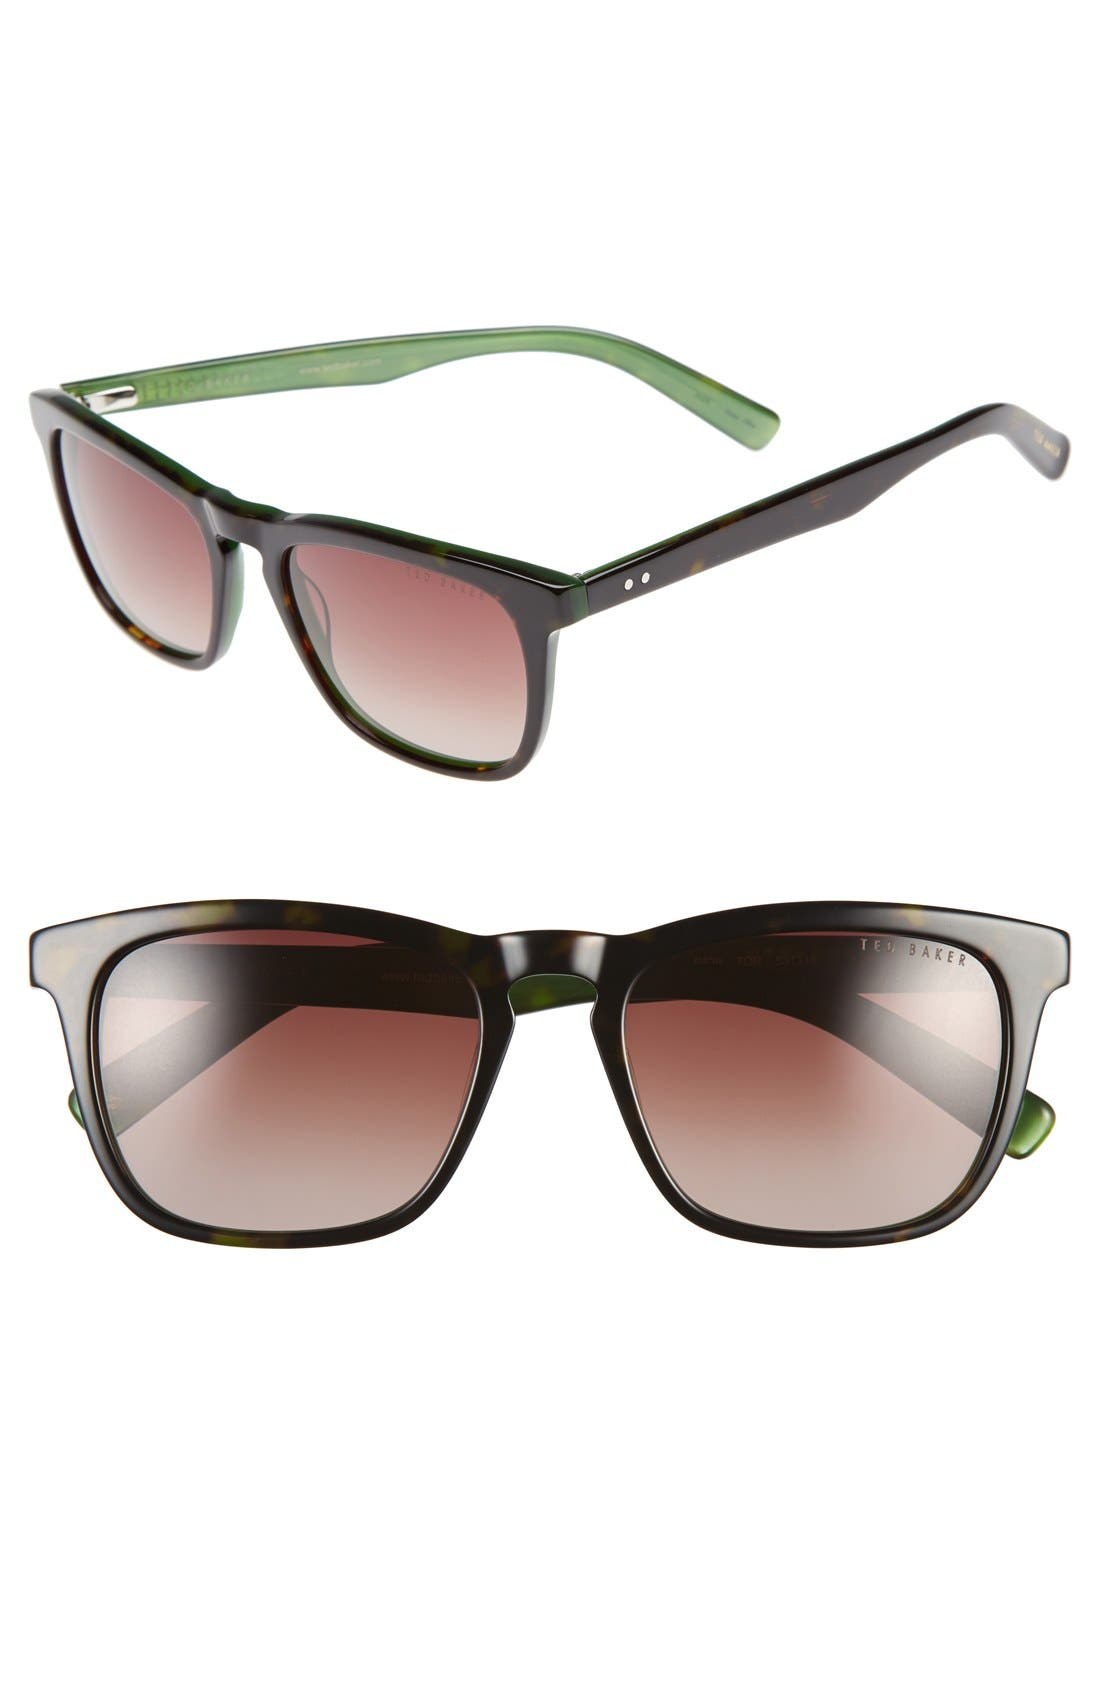 53mm Sunglasses,                         Main,                         color, 241